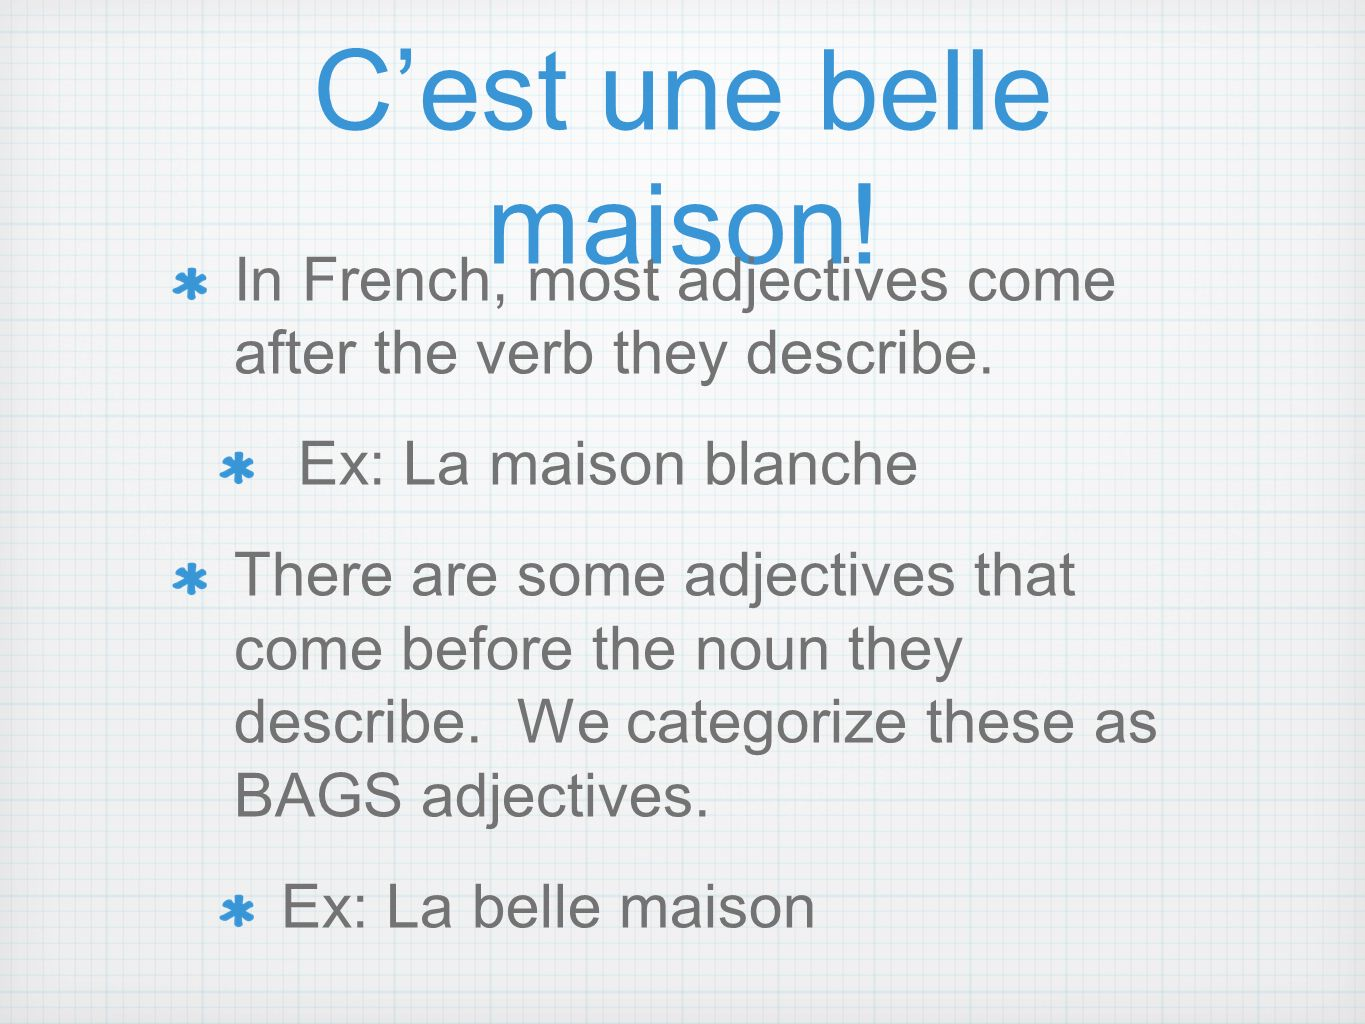 Cest une belle maison. In French, most adjectives come after the verb they describe.